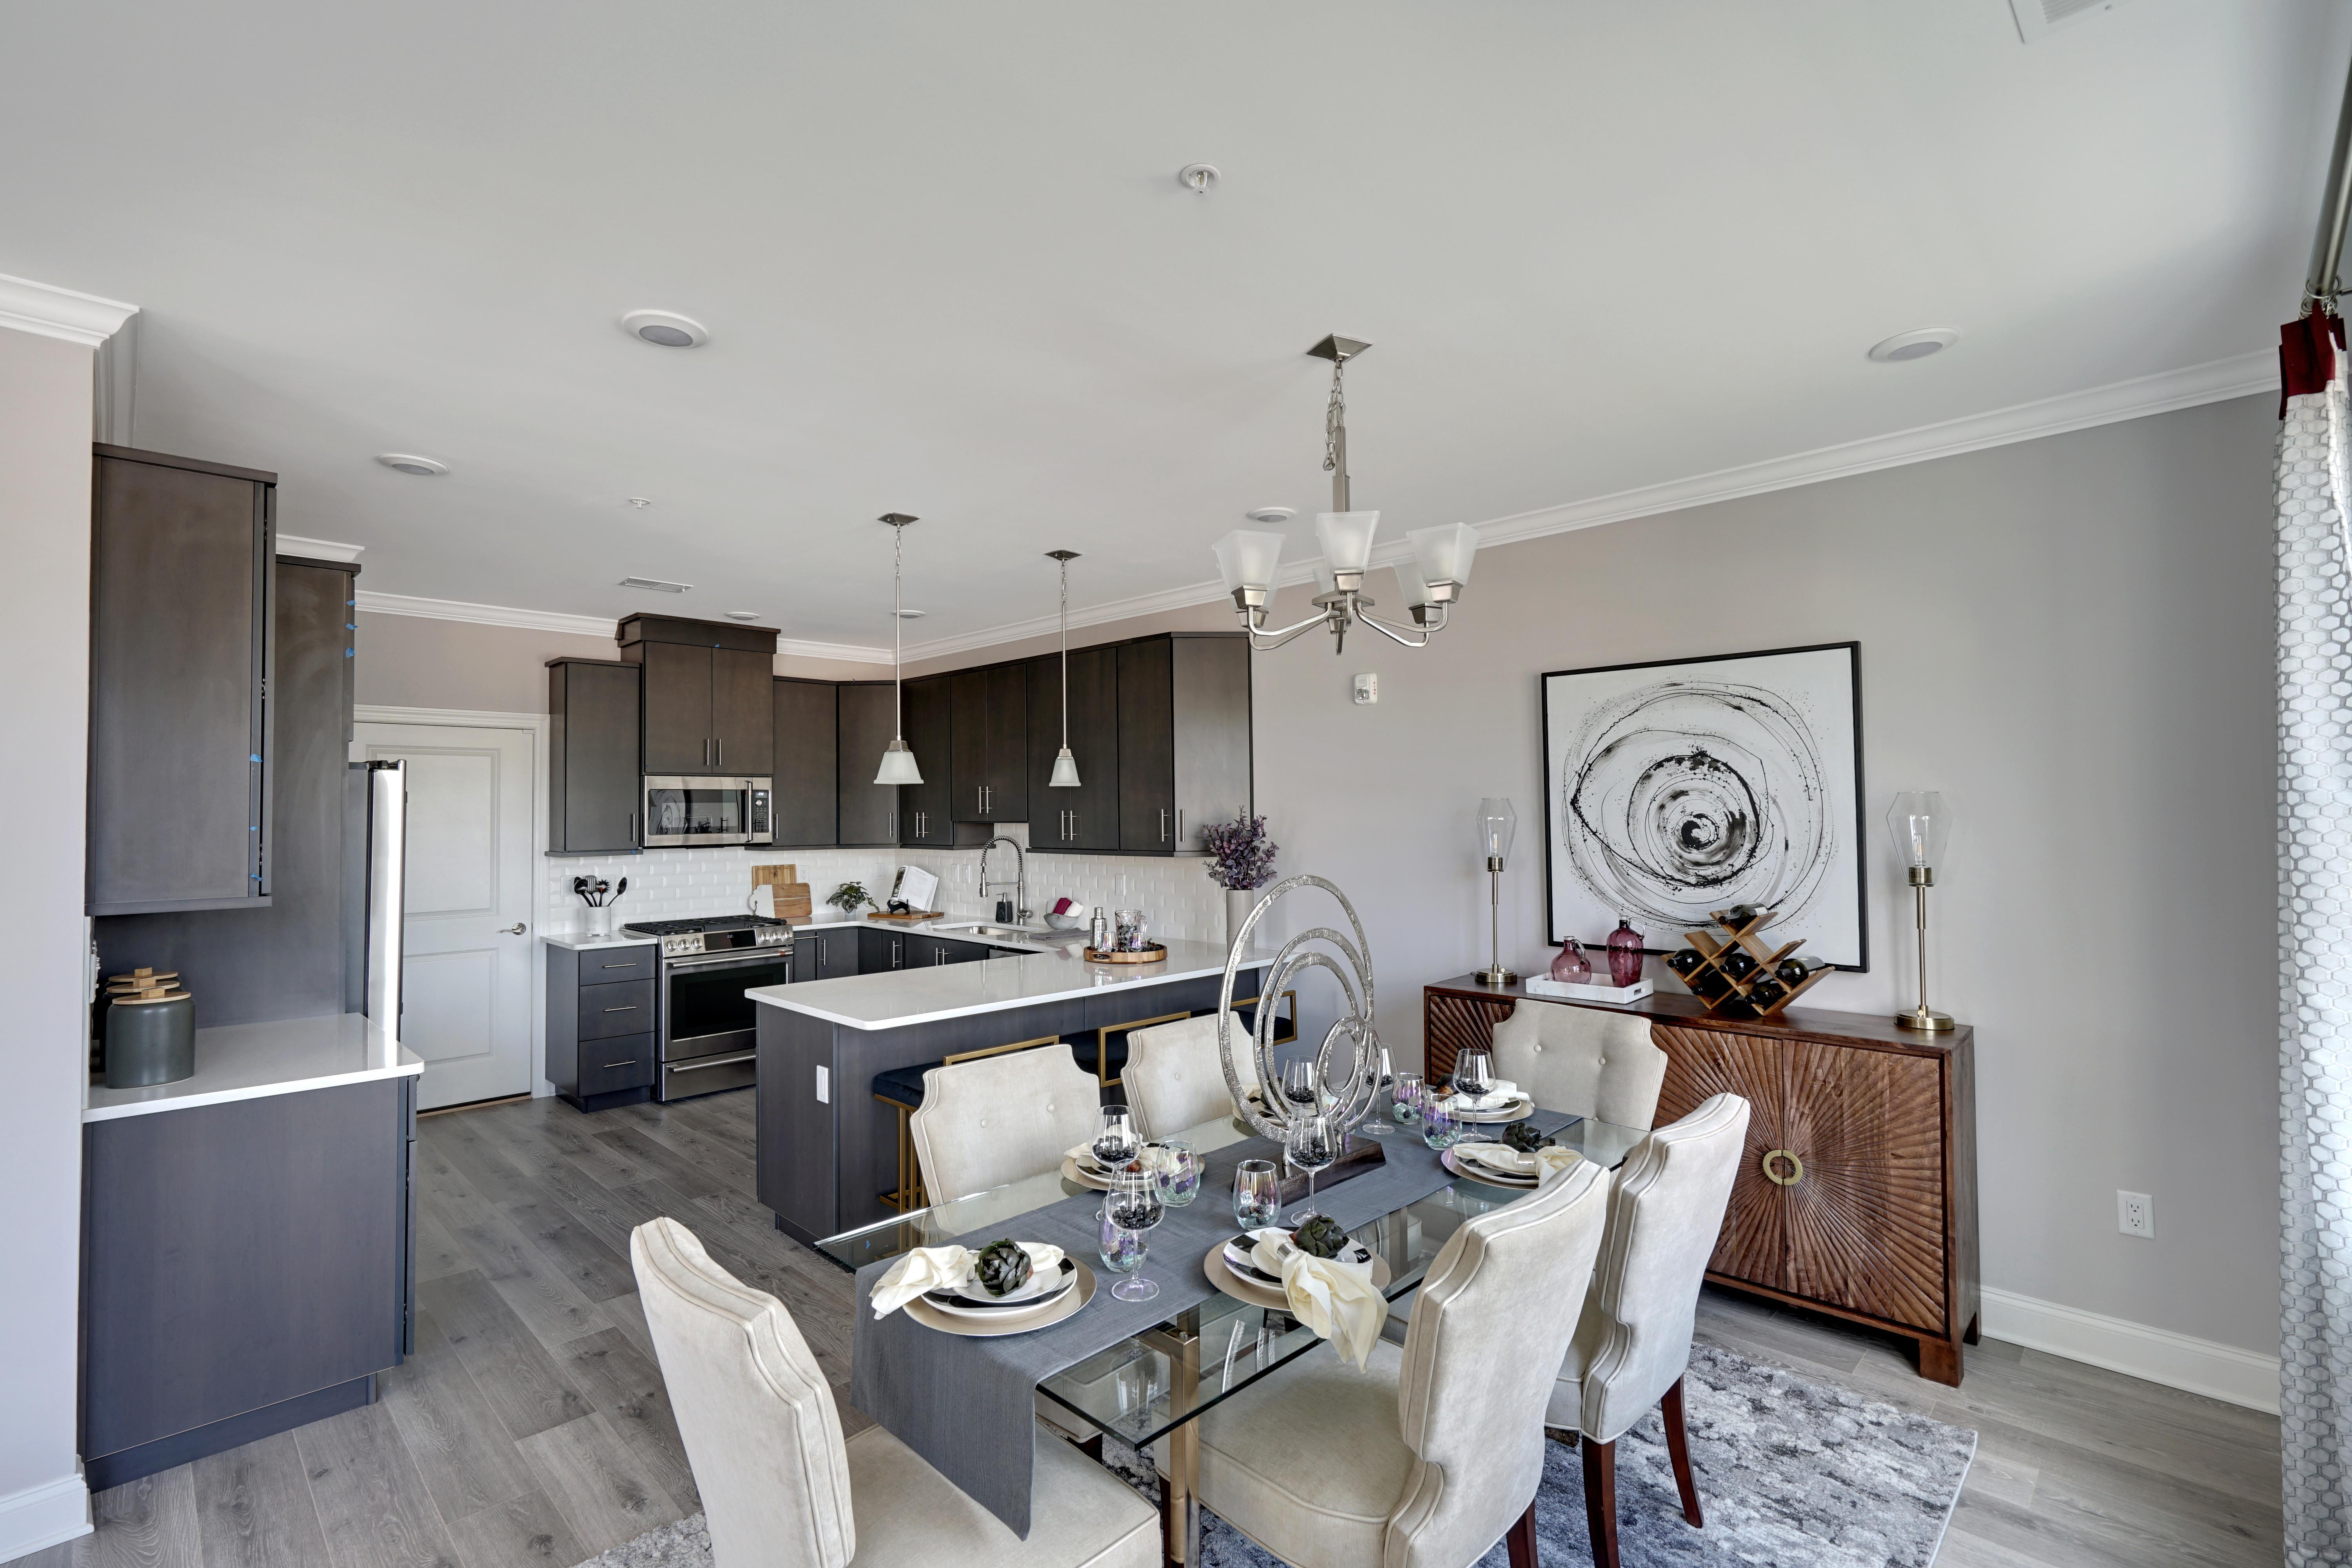 Kitchen featured in the Brookside By American Properties Realty in Middlesex County, NJ